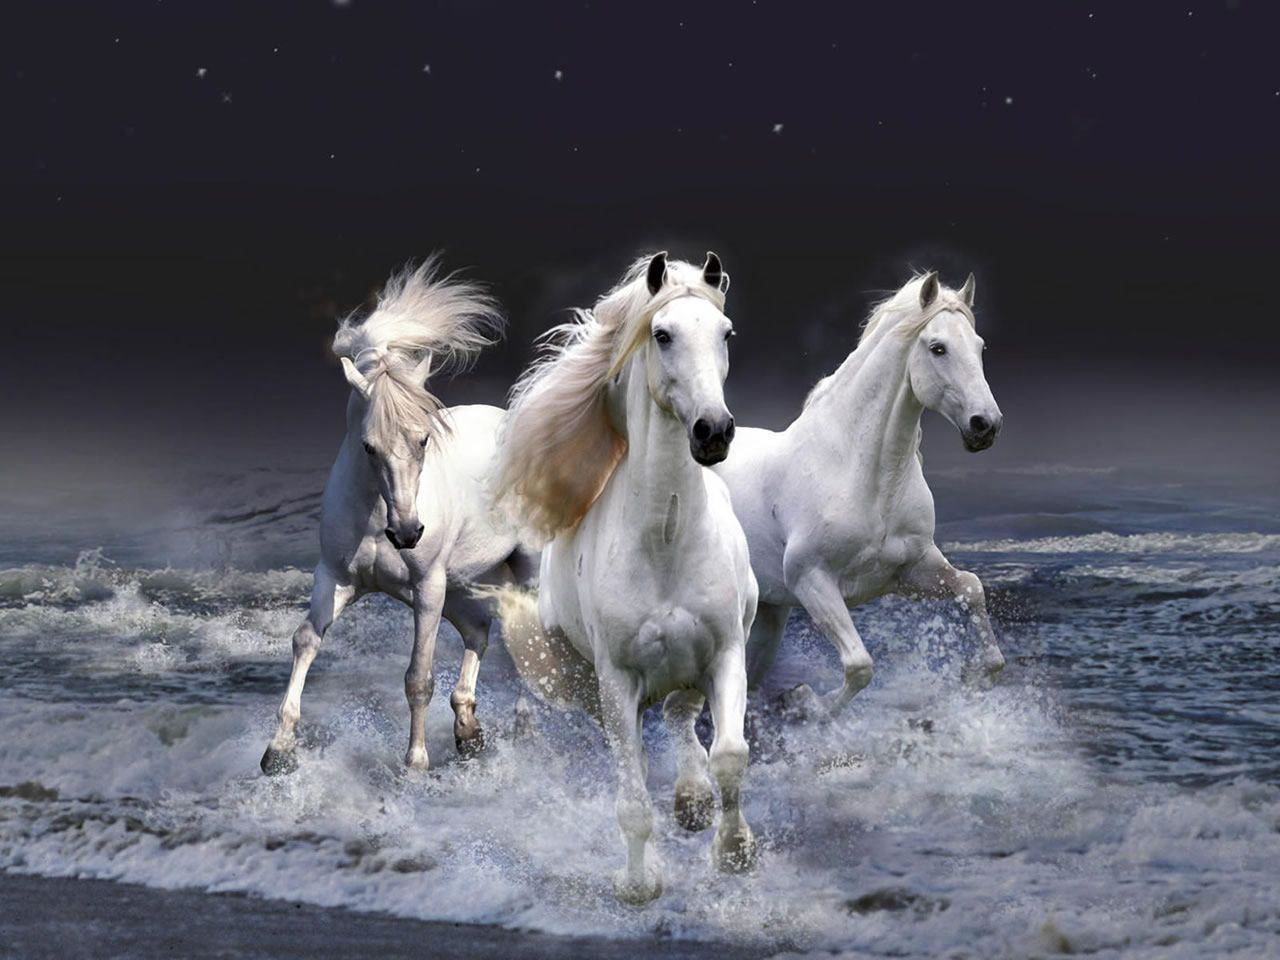 Three White Horses Running In The Water Horse Wallpaper White Horses Horses